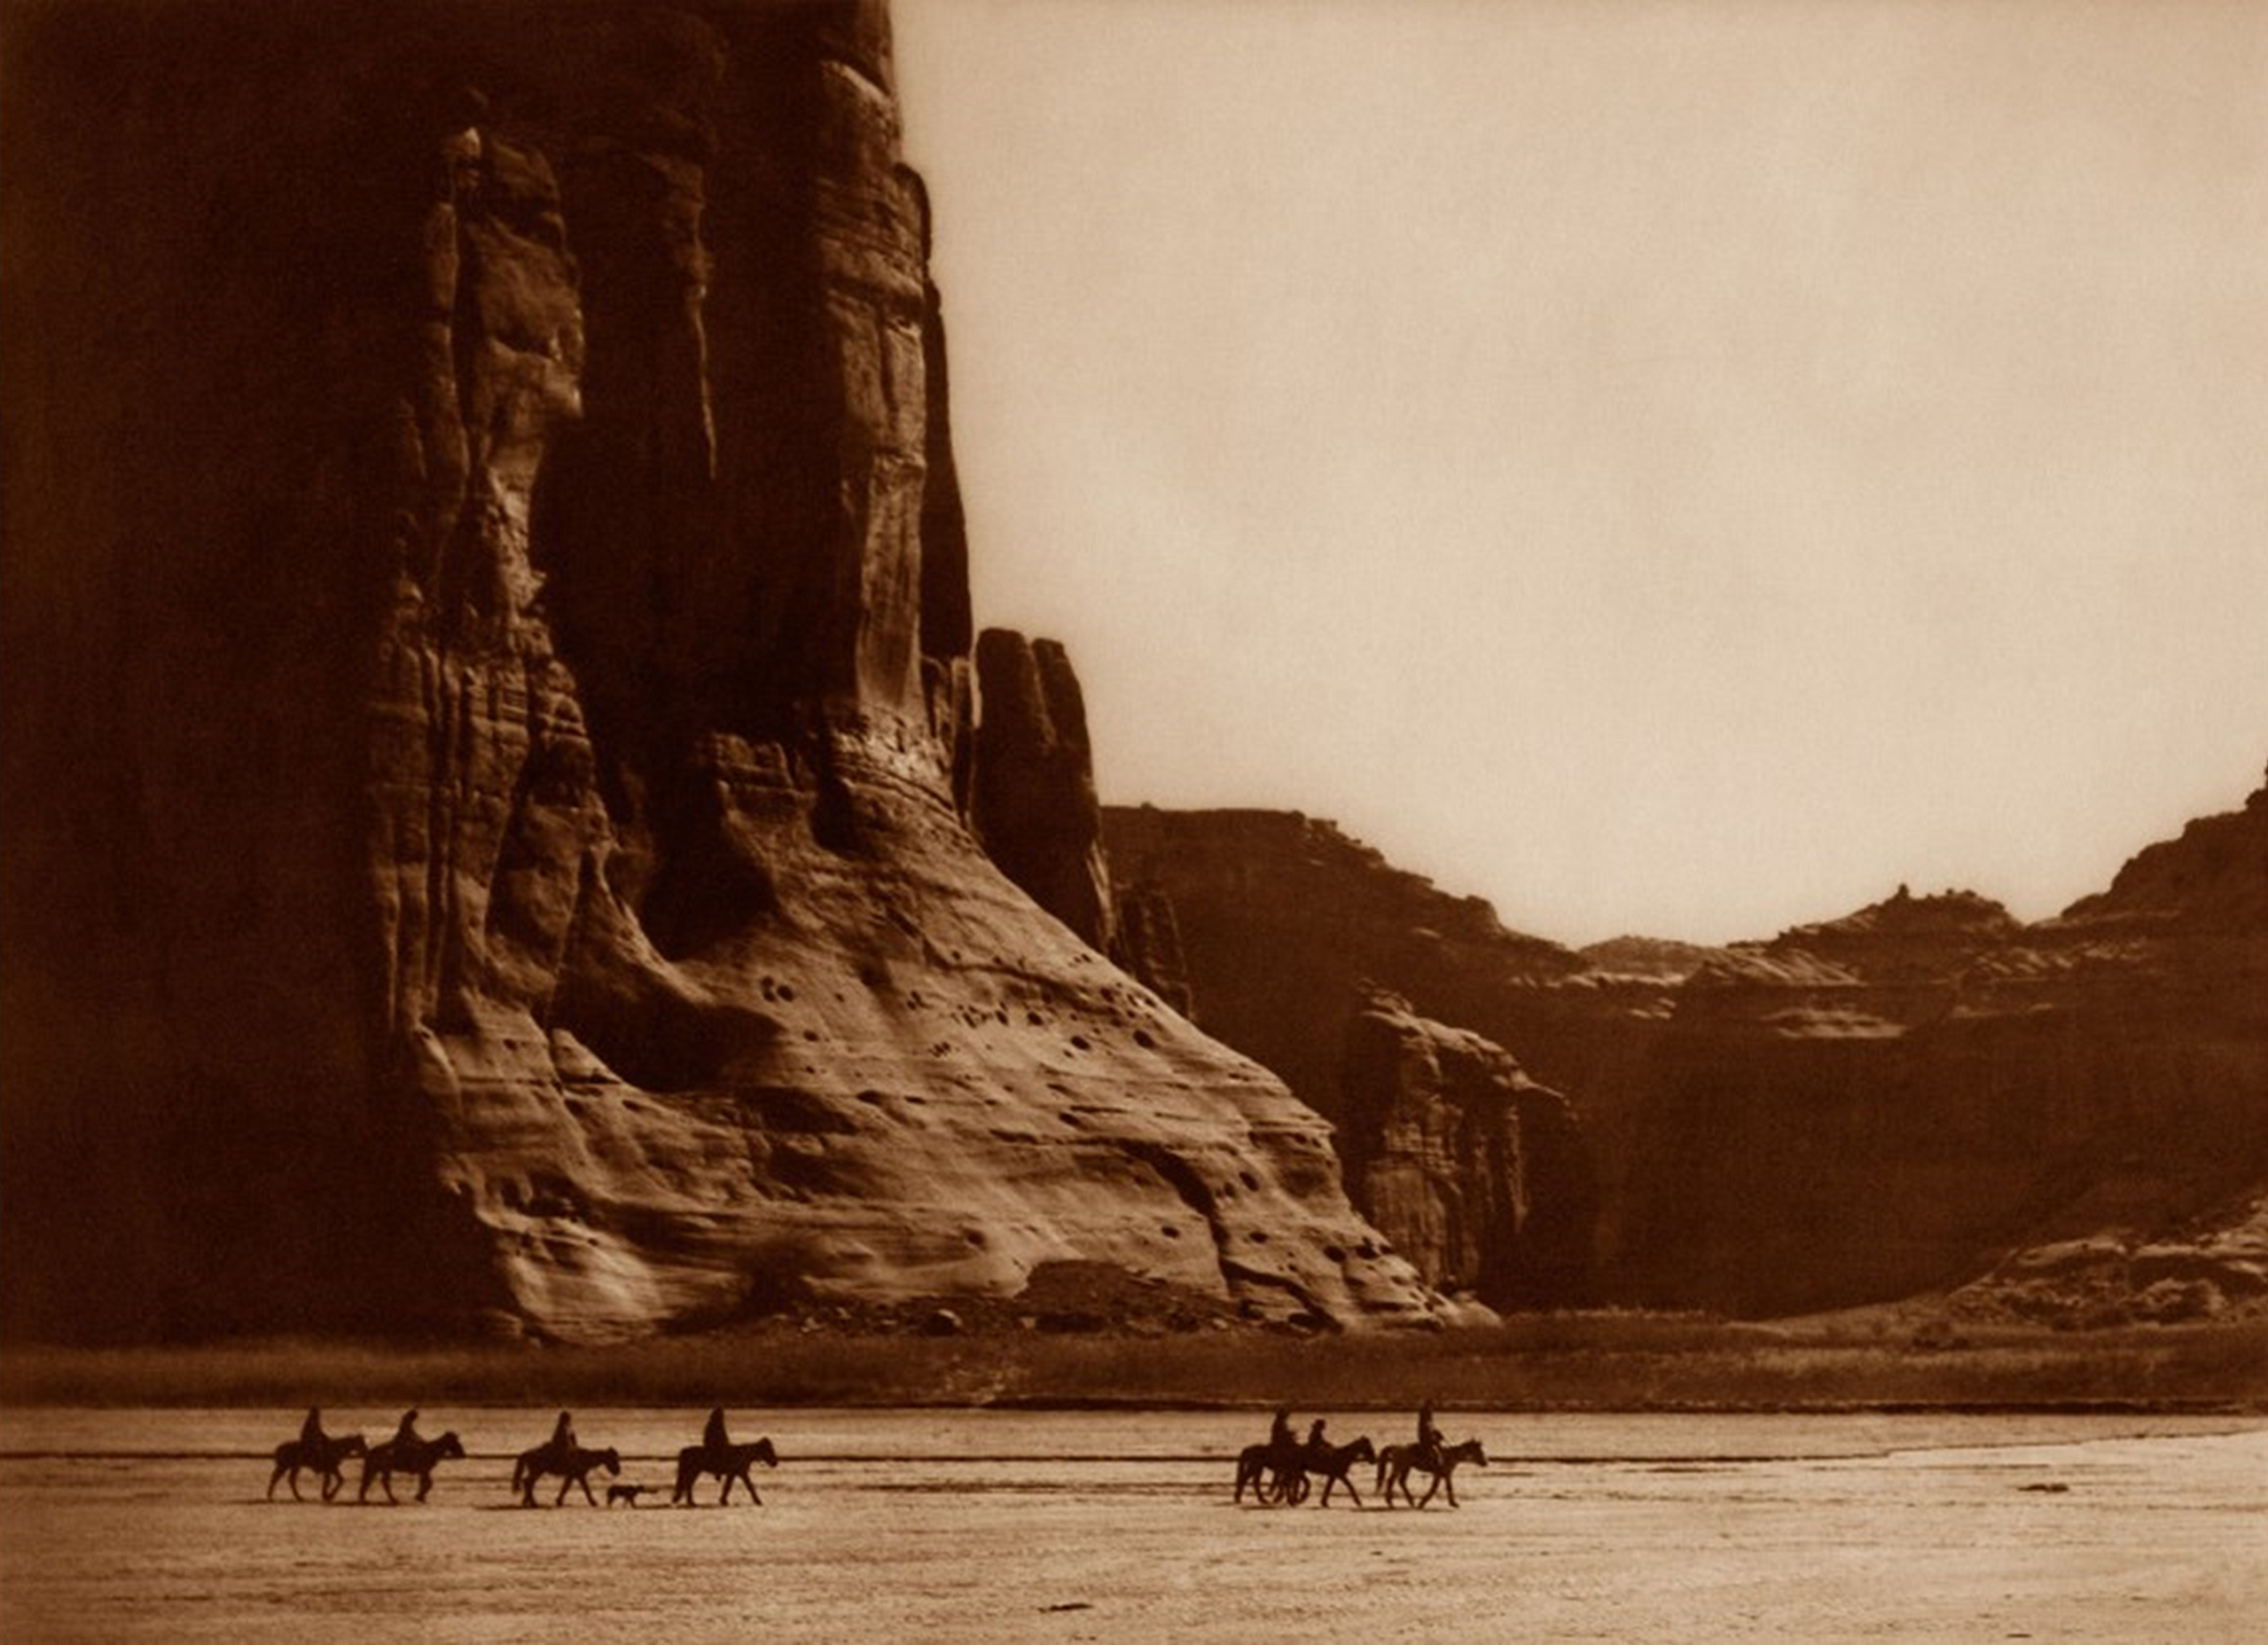 Navajo People Ride Horses by Arizonas Canyon de Chelly (Edward S. Curtis, 1904)